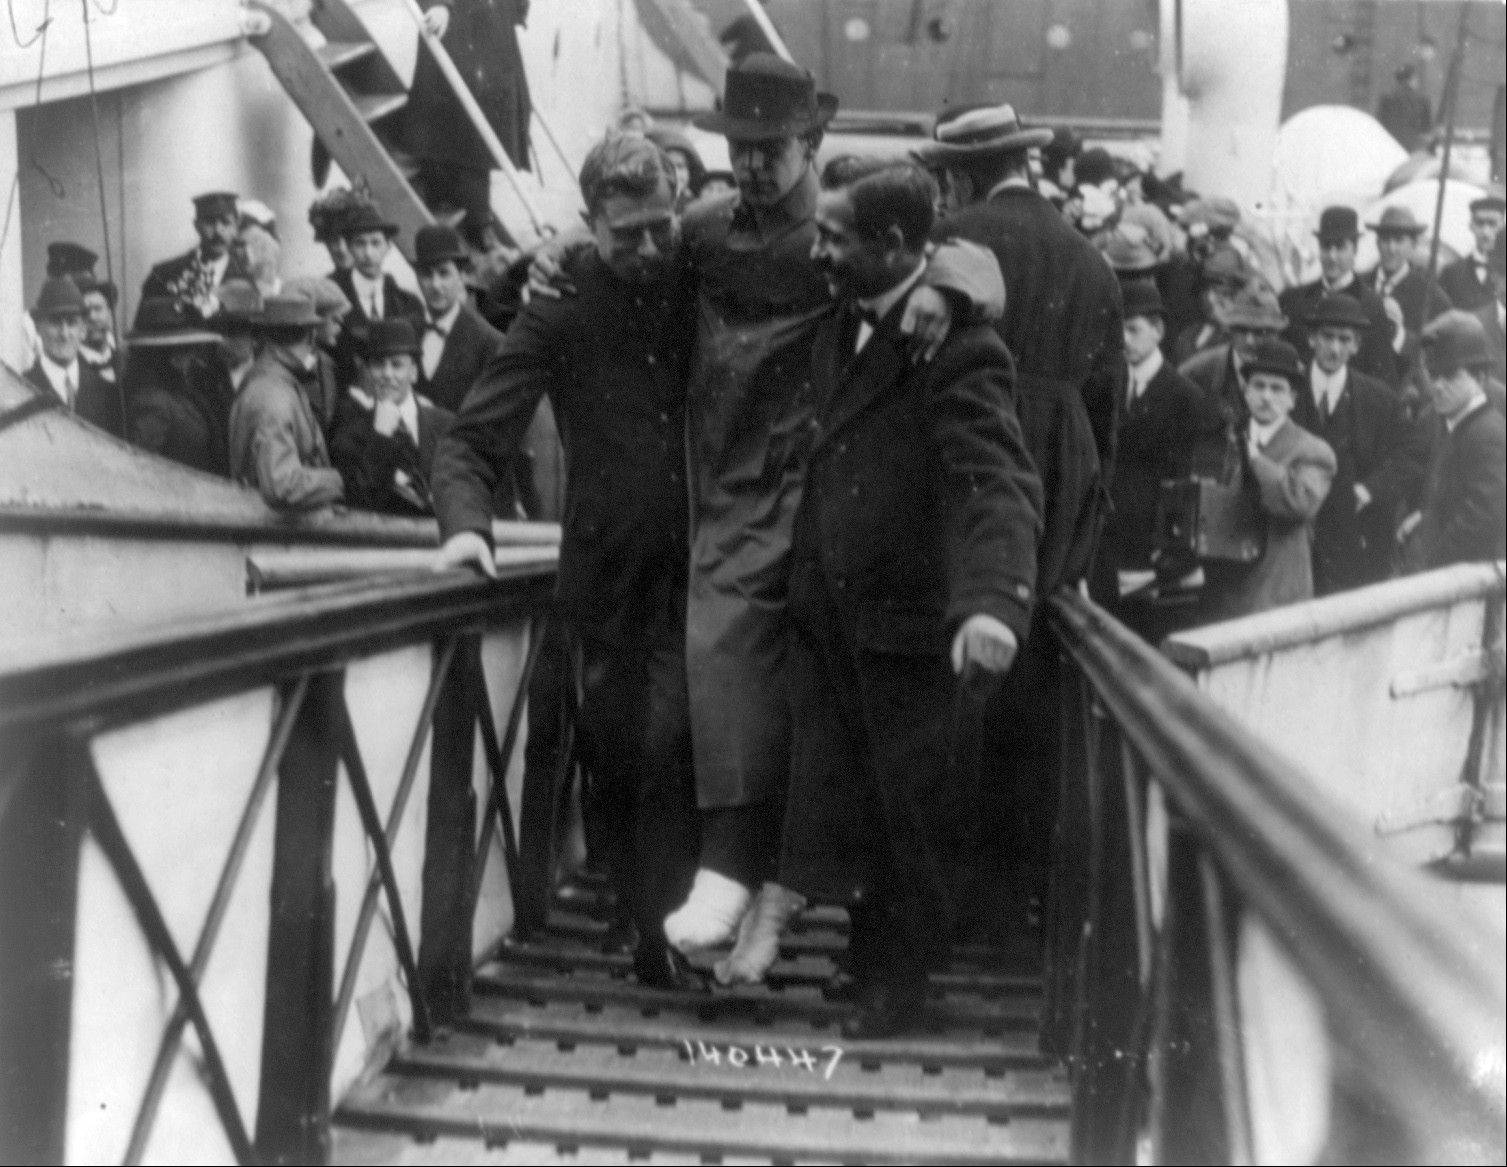 "In this 1912 photo made available by the Library of Congress, Harold Bride, surviving wireless operator of the Titanic, with feet bandaged, is carried up the ramp of a ship. April 15, 2012 is the 100th anniversary of the sinking of the Titanic, just five days after it left Southampton on its maiden voyage to New York. It was a news story that would change the news. From the moment that a brief Associated Press dispatch relayed the wireless distress call _ ""Titanic ... reported having struck an iceberg. The steamer said that immediate assistance was required"" _ reporters and editors scrambled. In ways that seem familiar today, they adapted a dawning newsgathering technology and organized saturation coverage and managed to cover what one authority calls ""the first really, truly international news event where anyone anywhere in the world could pick up a newspaper and read about it."""